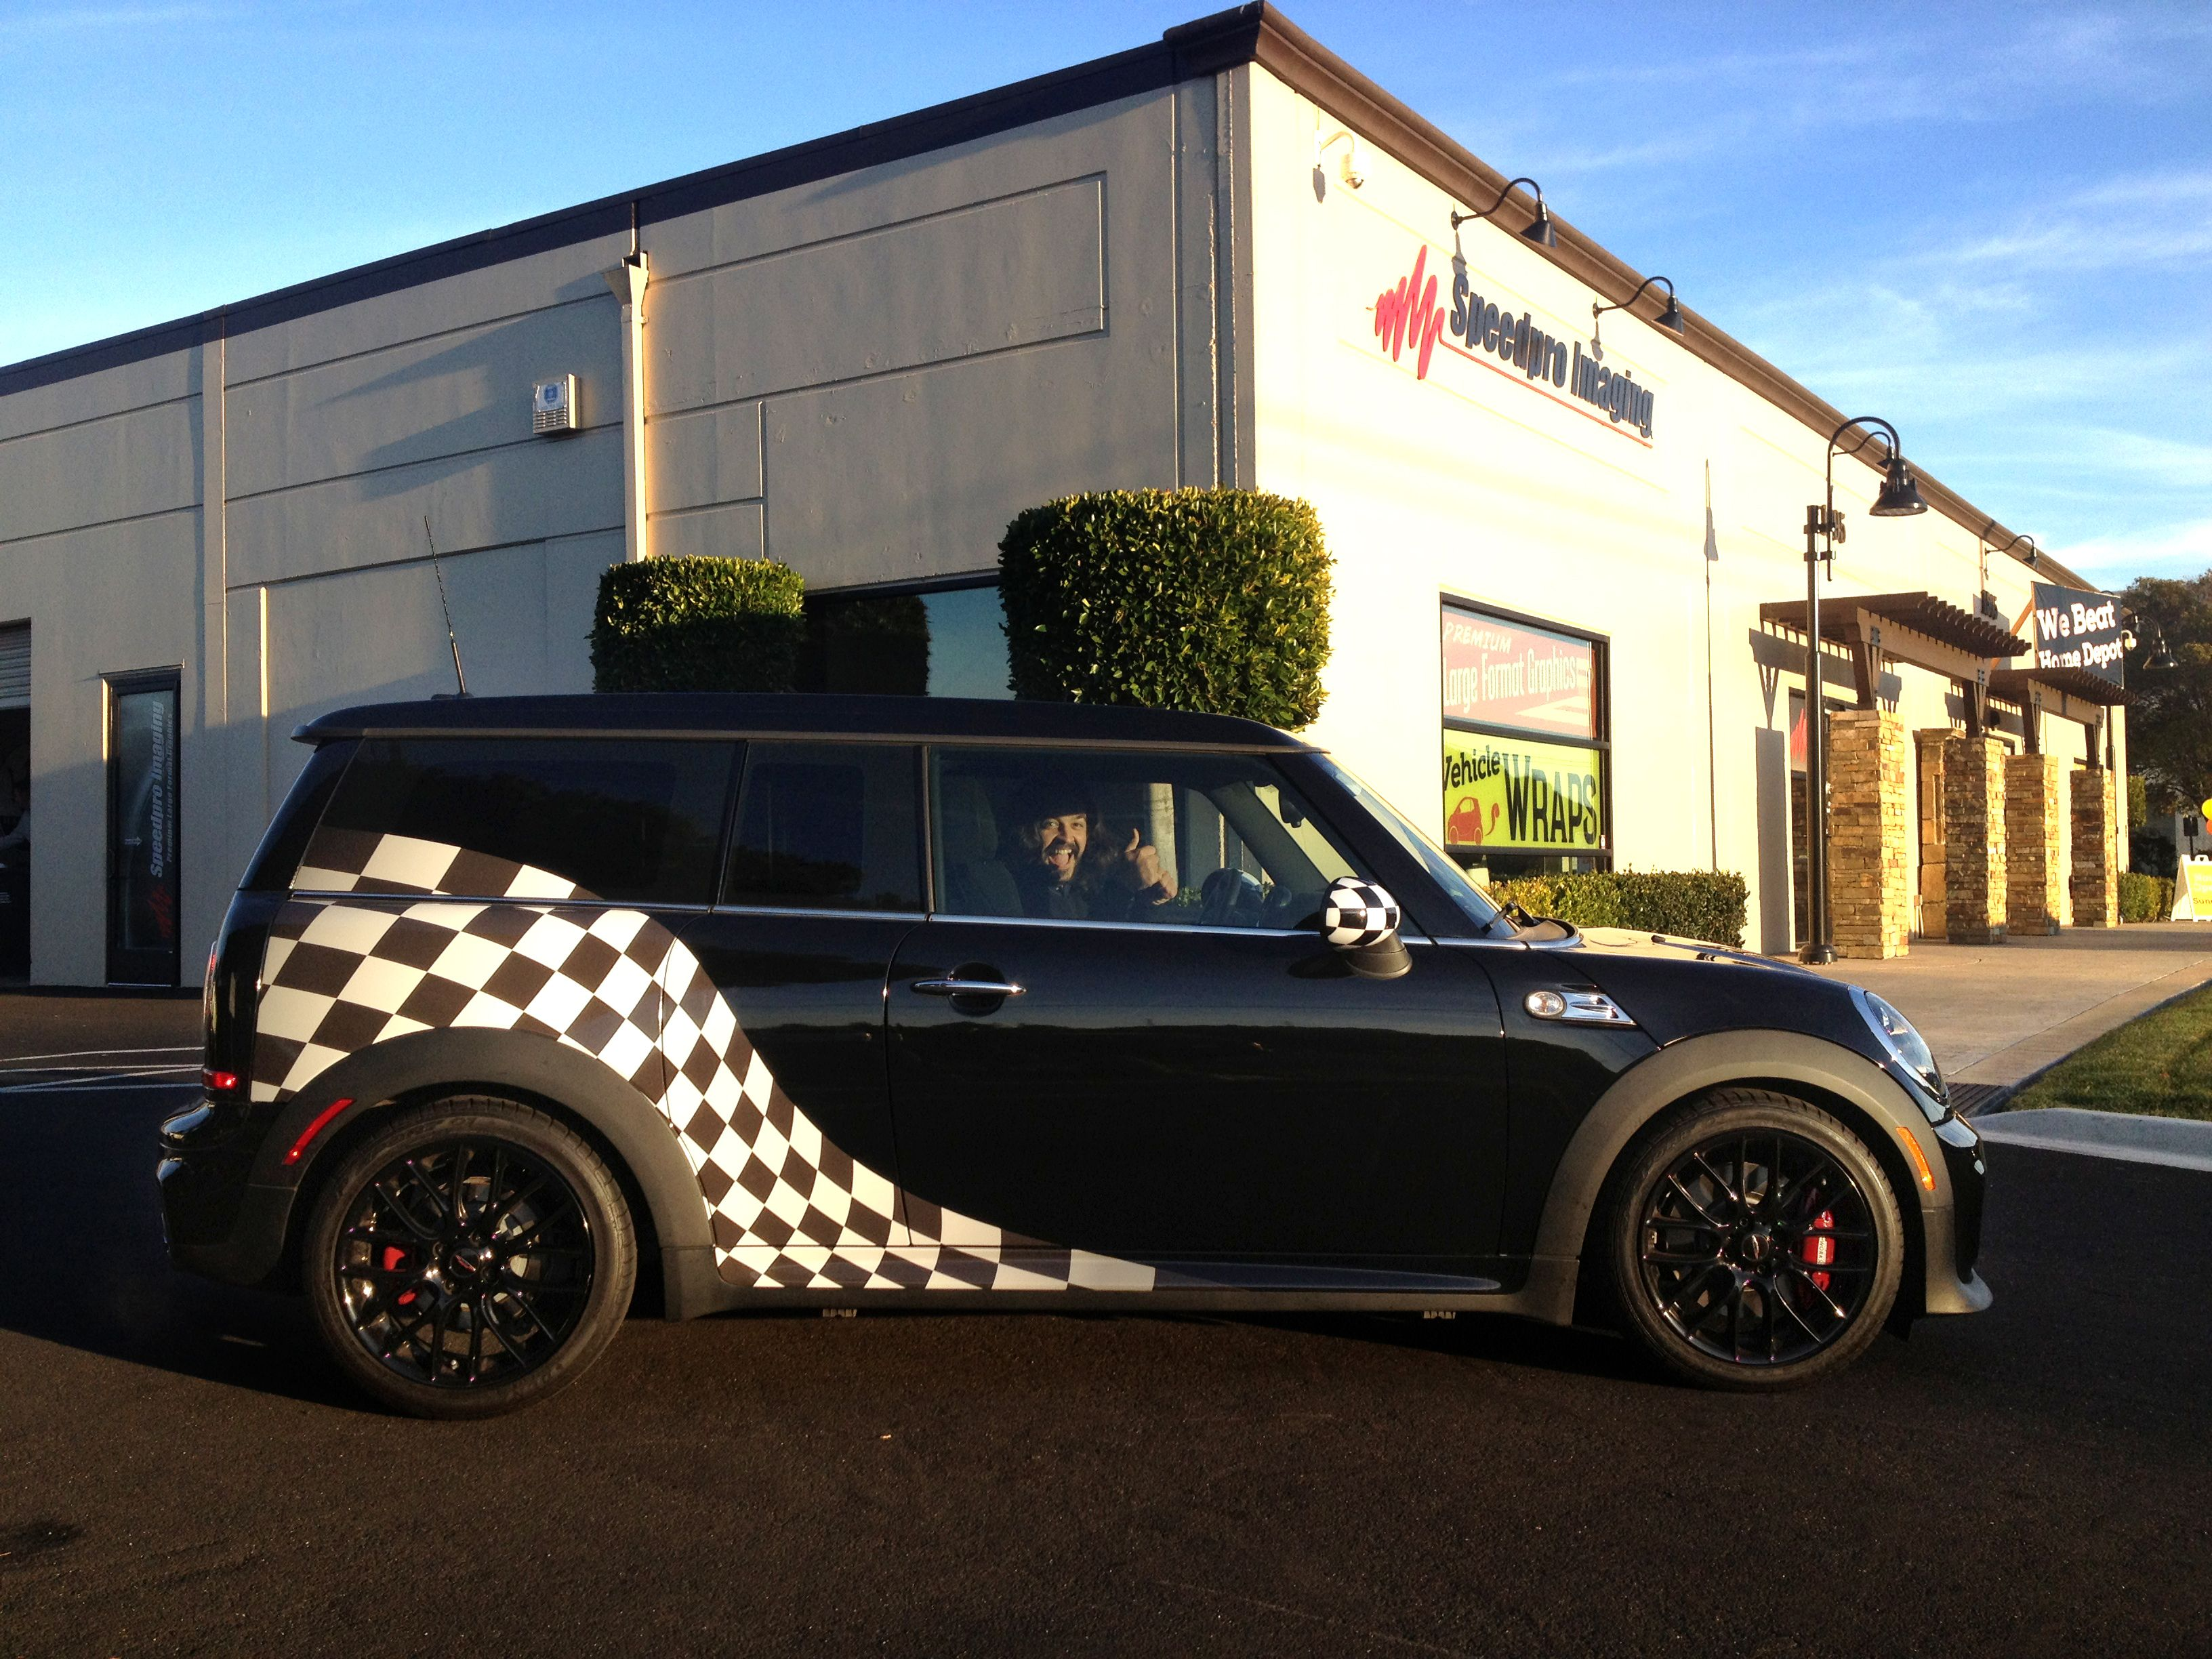 Love The Checkered Flag Graphics We Did For Our Client S Mini Vehiclegraphics Vehicleswraps Printing Signage Mark Car Graphics Yellow Cabs Checkered Flag [ 2448 x 3264 Pixel ]